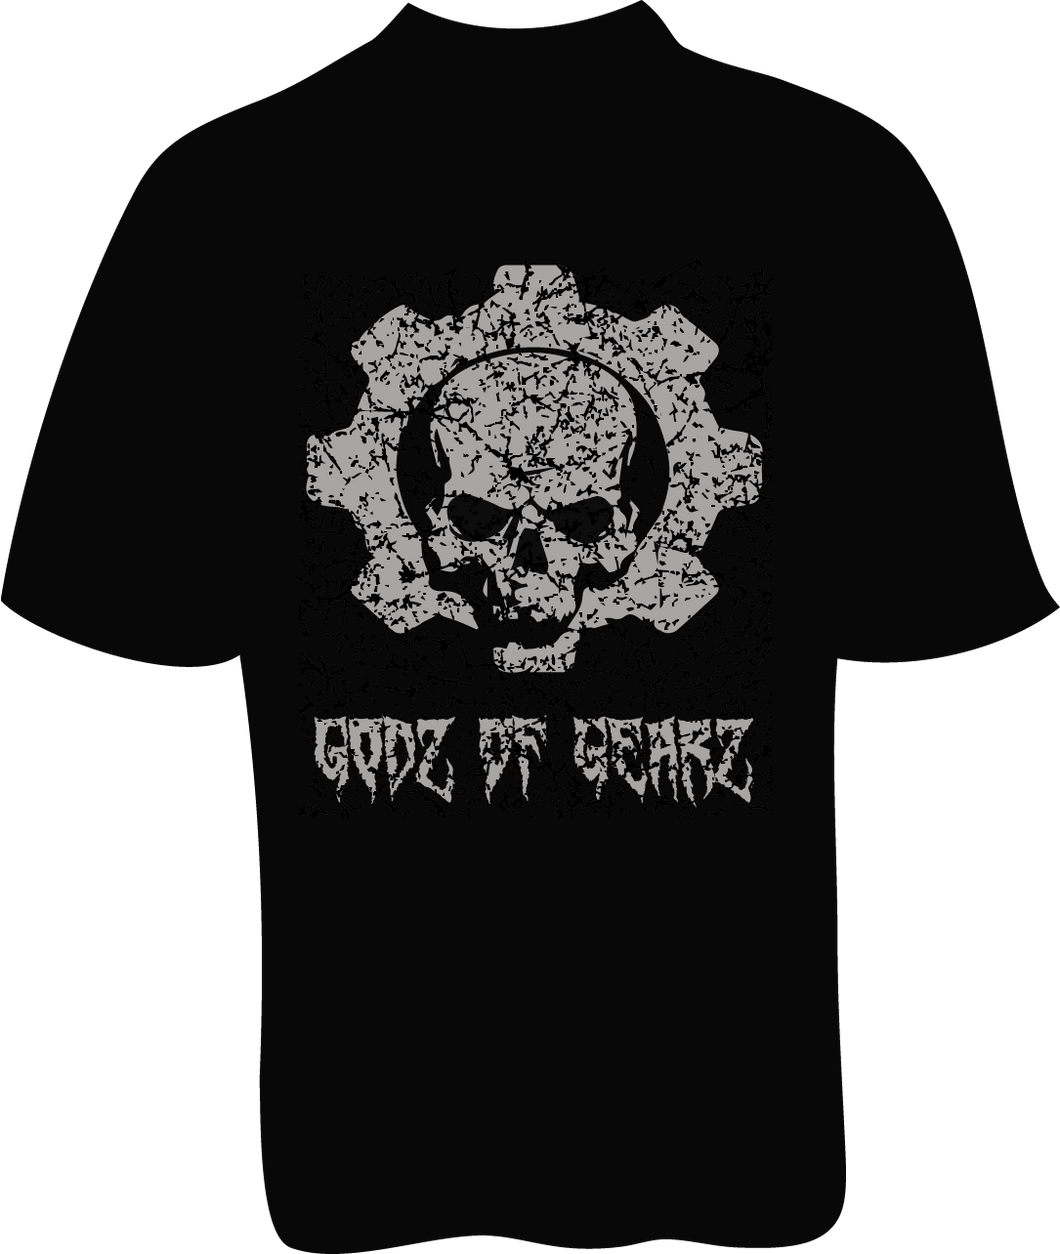 Skelebone Short Sleeve T-shirt, Godz of Gearz Back Print Front Logo